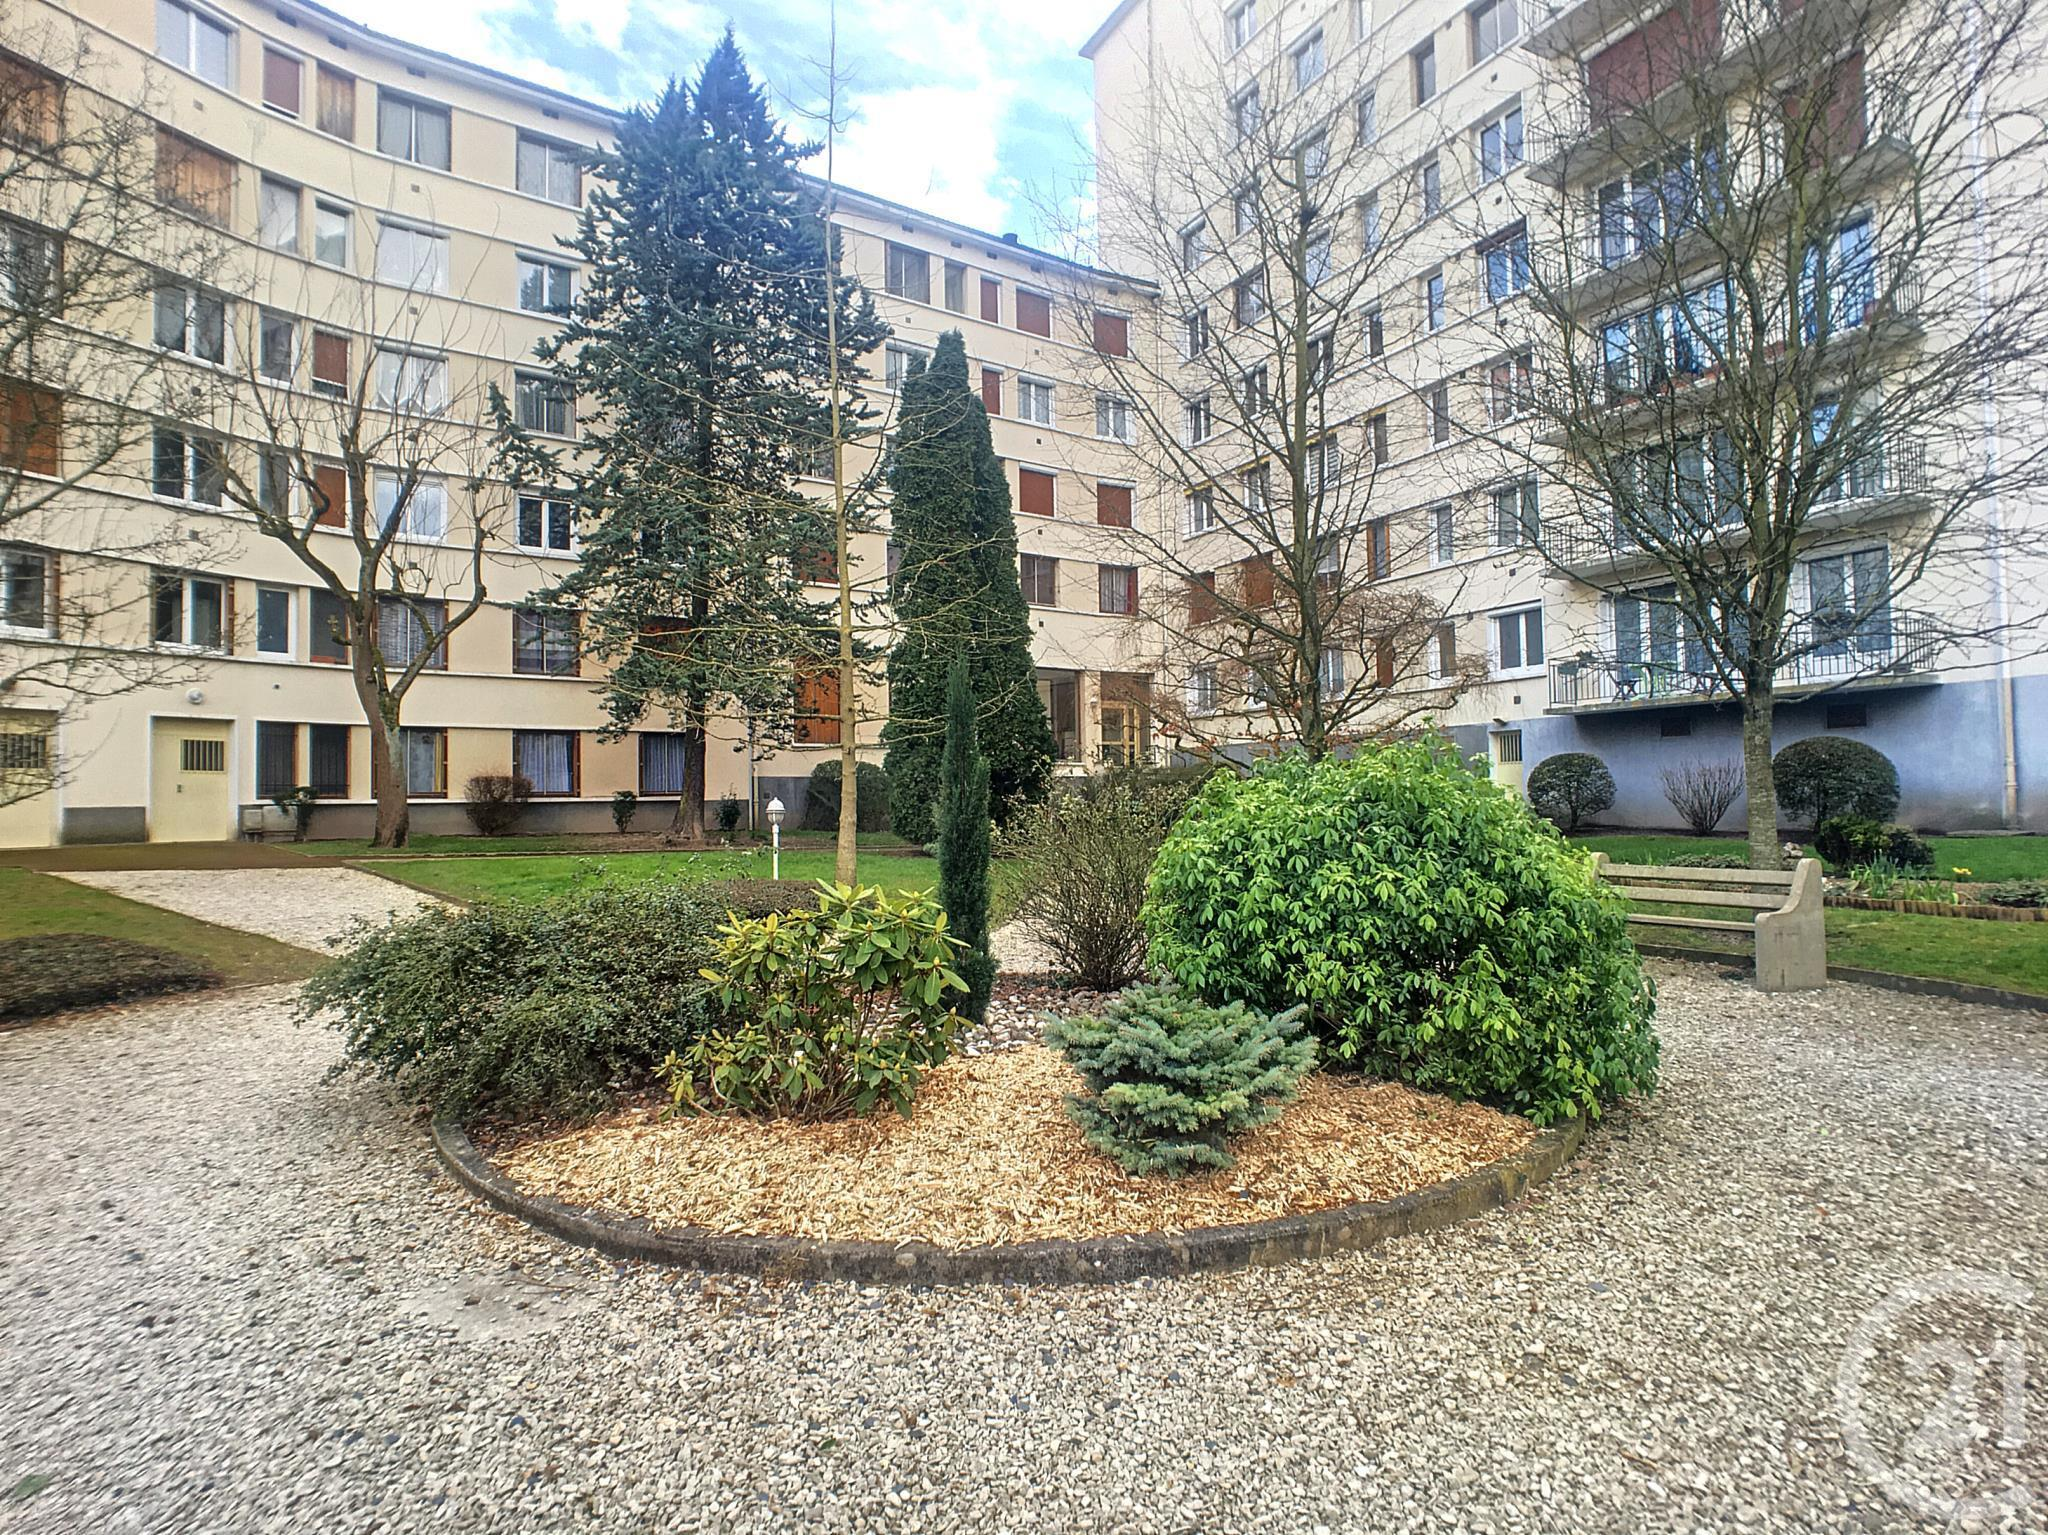 Appartement f3 à vendre - 3 pièces - 75 m2 - TROYES - 10 - CHAMPAGNE-ARDENNE